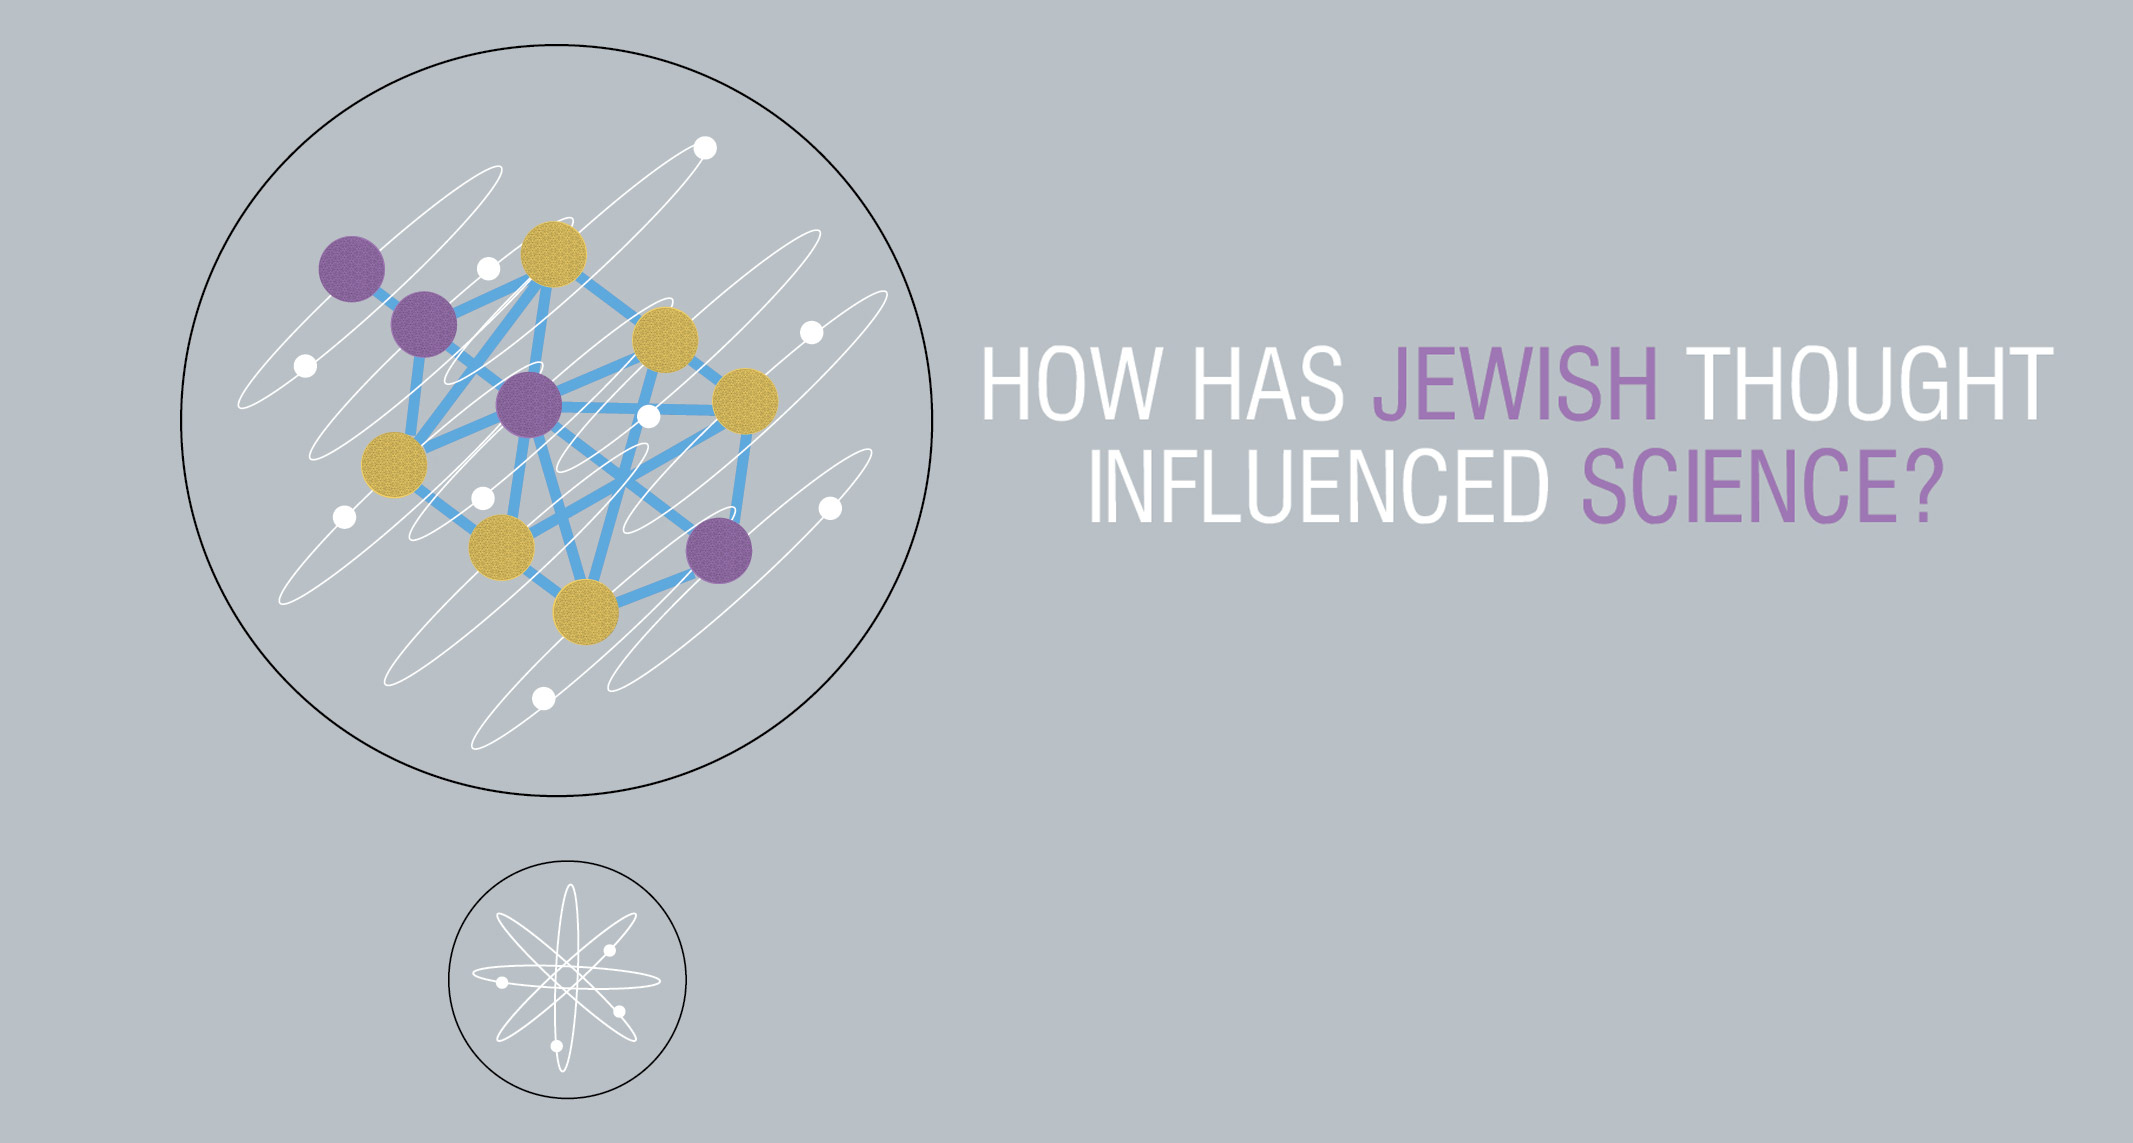 How Has Jewish Thought Influenced Science